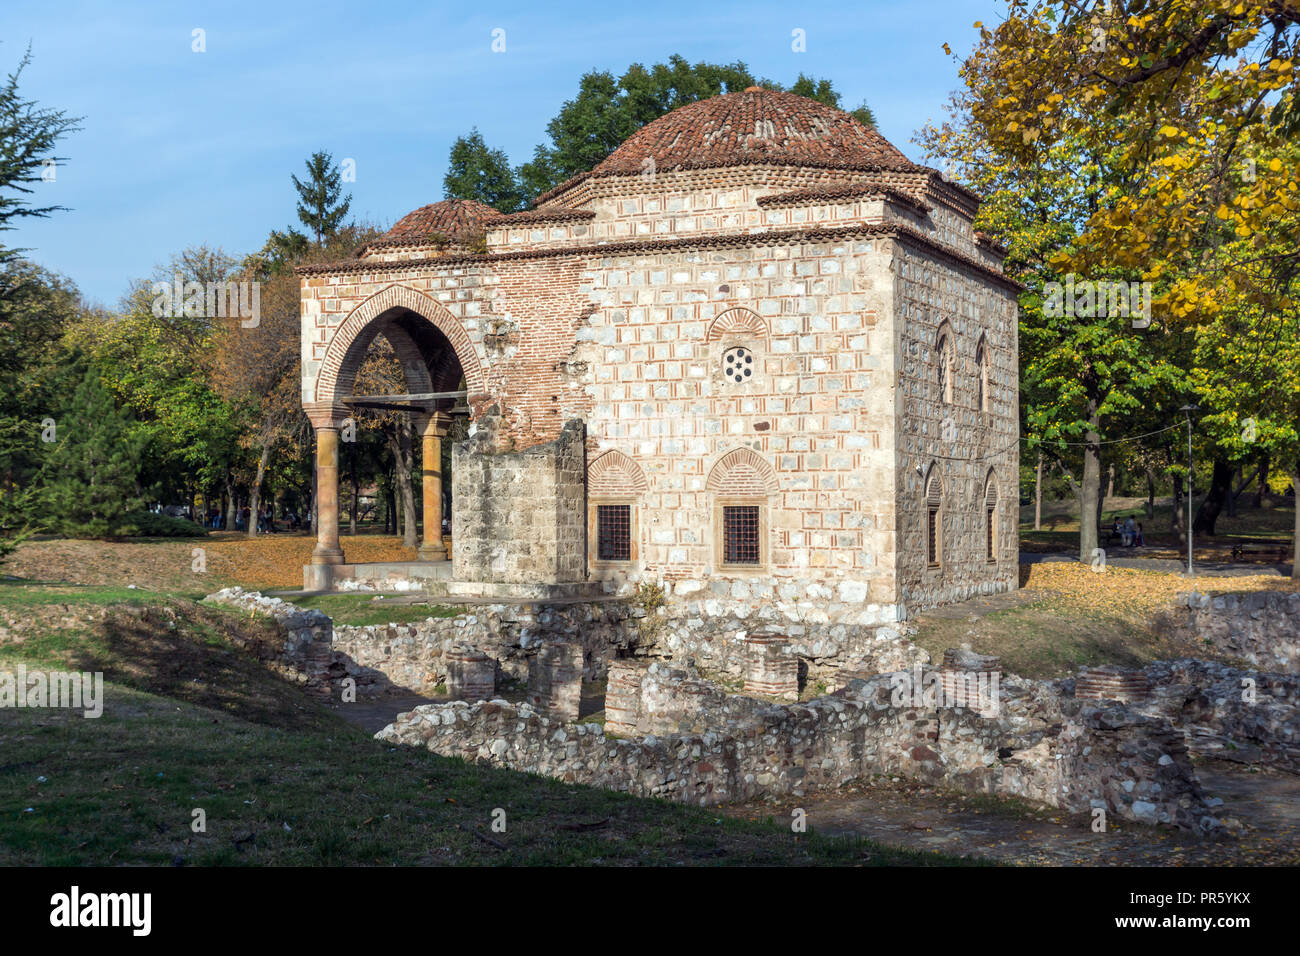 NIS, SERBIA- OCTOBER 21, 2017: Sunset view of Bali Beg Mosque in Fortress of City of Nis, Serbia - Stock Image